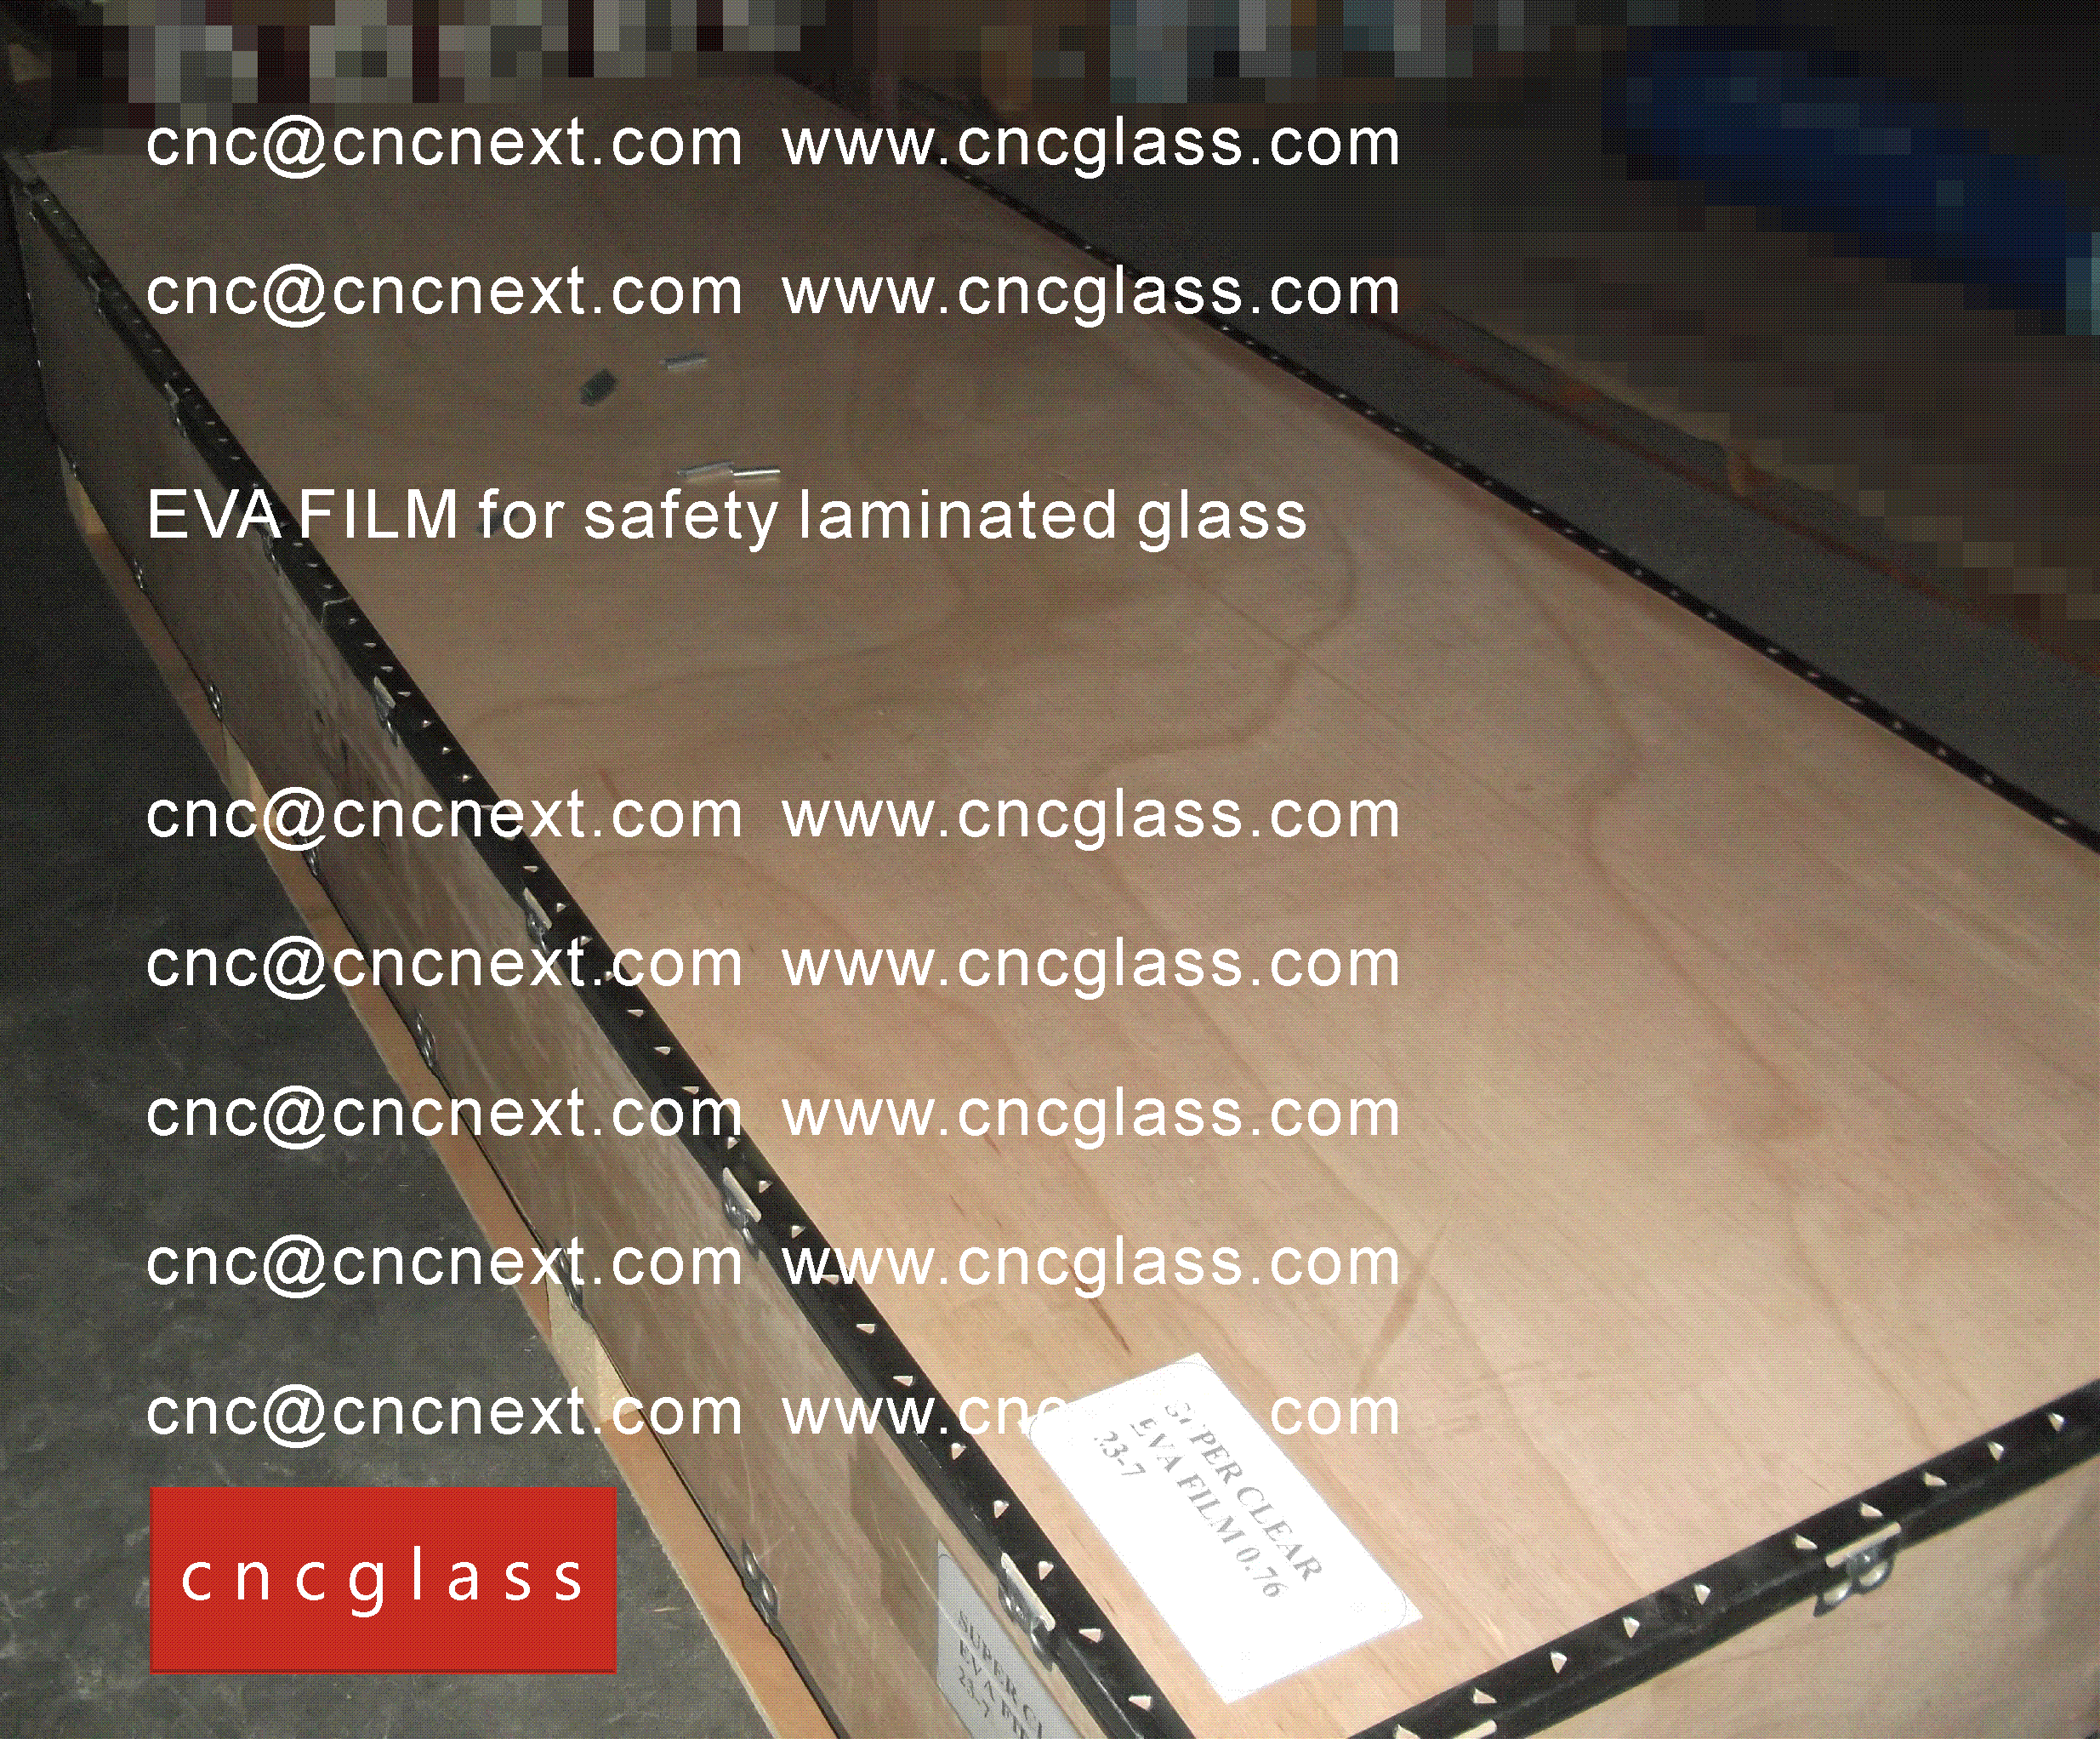 00 0 EVALAM INATING FILM LOADING CONTAINER (SAFETY LAMINATED GLASS)